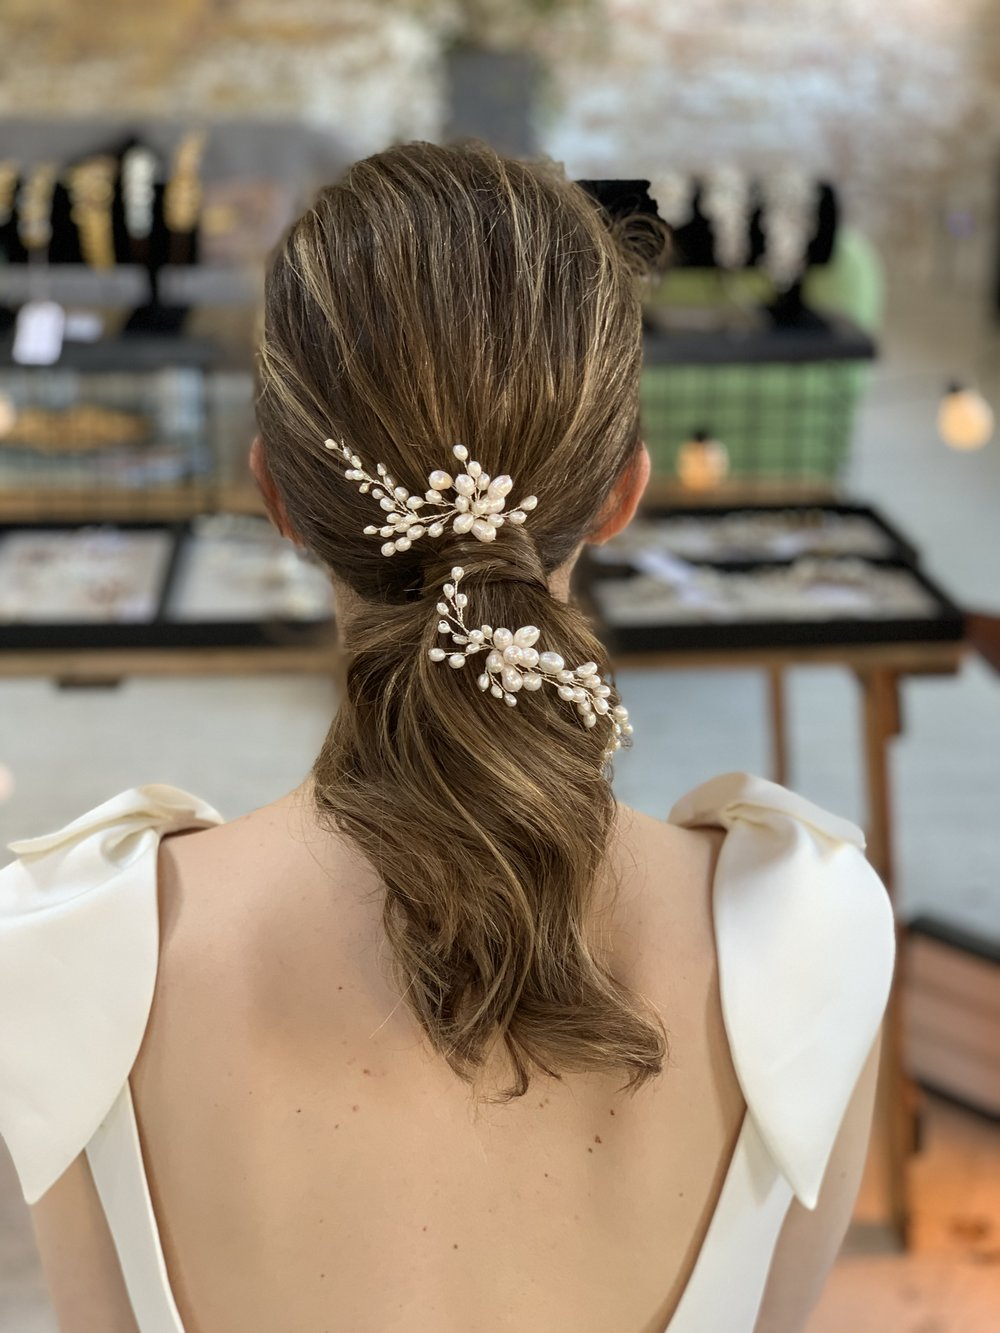 jemima | hairpins — miss clemmie artisan bridal accessories | beautiful hair accessories & jewellery for stylish brides | free delivery